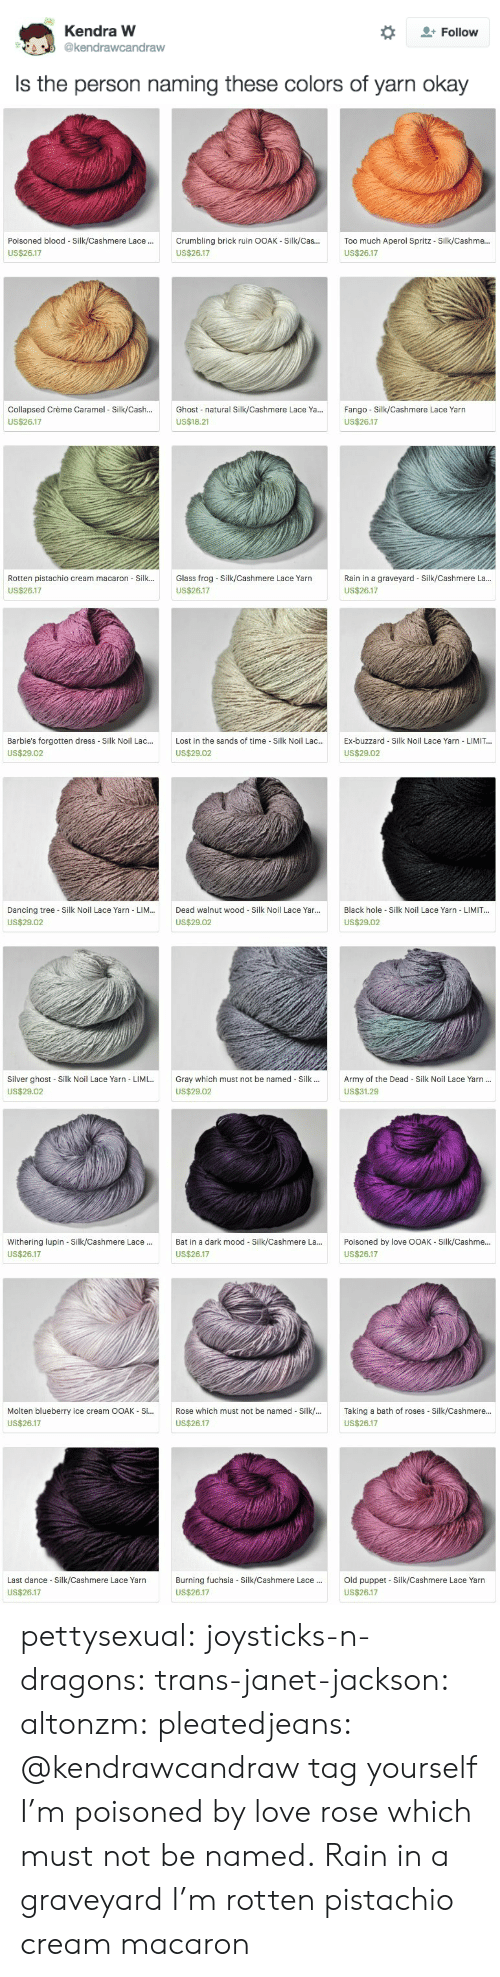 Janet Jackson: Kendra W  Follow  @kendrawcandraw  Is the person naming these colors of yarn okay   Poisoned blood Silk/Cashmere Lace .  Crumbling brick ruin OOAK - Silk/Cas..  Too much Aperol Spritz - Silk/Cashme...  US$26.17  US$26.17  US$26.17  Ghost natural Silk/Cashmere Lace Ya...  Collapsed Crème Caramel Silk/Cash...  Fango Silk/Cashmere Lace Yarn  US$26.17  US$18.21  US$26.17  Rotten pistachio cream macaron Silk...  Glass frog-Silk/Cashmere Lace Yarn  Rain in a graveyard Silk/Cashmere La...  US$26.17  US$26.17  US$26.17   Barbie's forgotten dress Silk Noil Lac...  Lost in the sands of time Silk Noil Lac...  Ex-buzzard Silk Noil Lace Yarn LIMIT...  US$29.02  US$29.02  US$29.02  Black hole Silk Noil Lace Yarn - LIMIT...  Dancing tree Silk Noil Lace Yarn LIM...  Dead walnut wood Silk Noil Lace Yar...  US$29.02  US$29.02  US$29.02  Silver ghost Silk Noil Lace Yarn LIMI...  Gray which must not be named Silk.  Army of the Dead Silk Noil Lace Yarn...  US$29.02  US$29.02  US$31.29   Withering lupin Silk/Cashmere Lace..  Bat in a dark mood Silk/Cashmere La...  Poisoned by love OOAK Silk/Cashme...  US$26.17  US$26.17  US$26.17  Molten blueberry ice cream OOAK Si...  Rose which must not be named Silk/...  Taking a bath of roses Silk/Cashmere...  US$26.17  US$26.17  US$26.17  Old puppet Silk/Cashmere Lace Yarn  Last dance Silk/Cashmere Lace Yarn  Burning fuchsia - Silk/Cashmere Lace...  US$26.17  US$26.17  US$26.17 pettysexual:  joysticks-n-dragons:  trans-janet-jackson:  altonzm:  pleatedjeans:  @kendrawcandraw  tag yourself I'm poisoned by love  rose which must not be named.  Rain in a graveyard  I'm rotten pistachio cream macaron